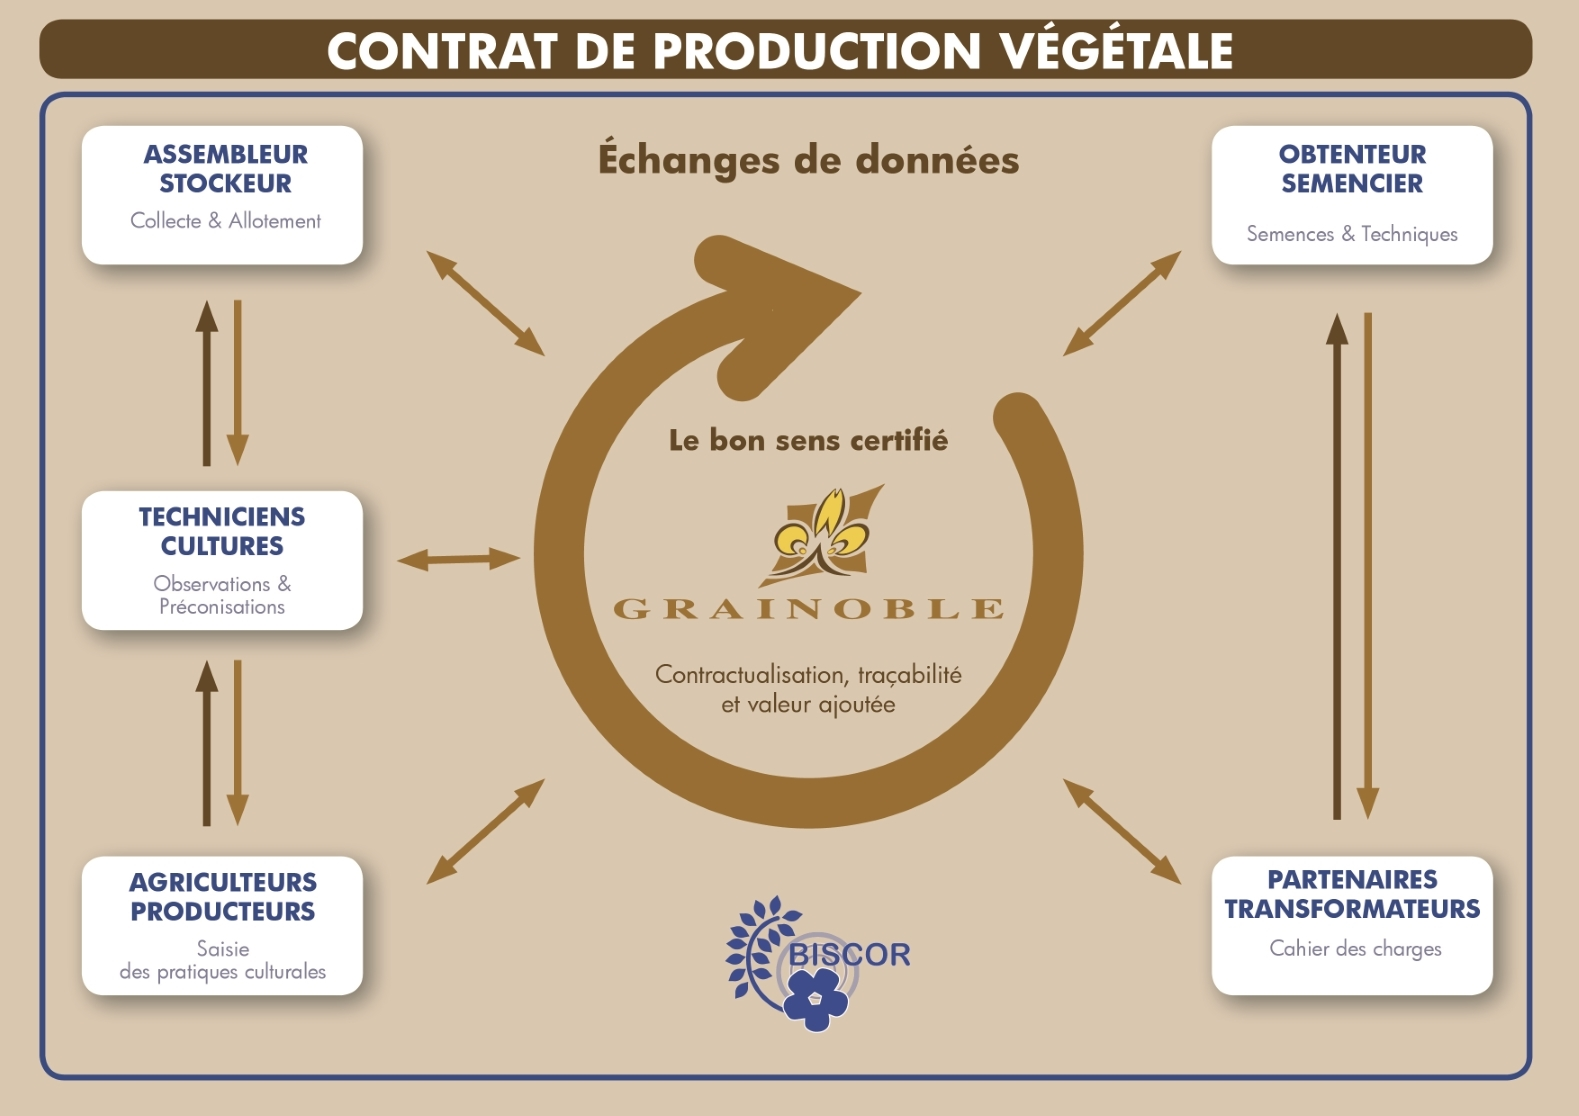 CONTRAT DE PRODUCTION VEGETALE